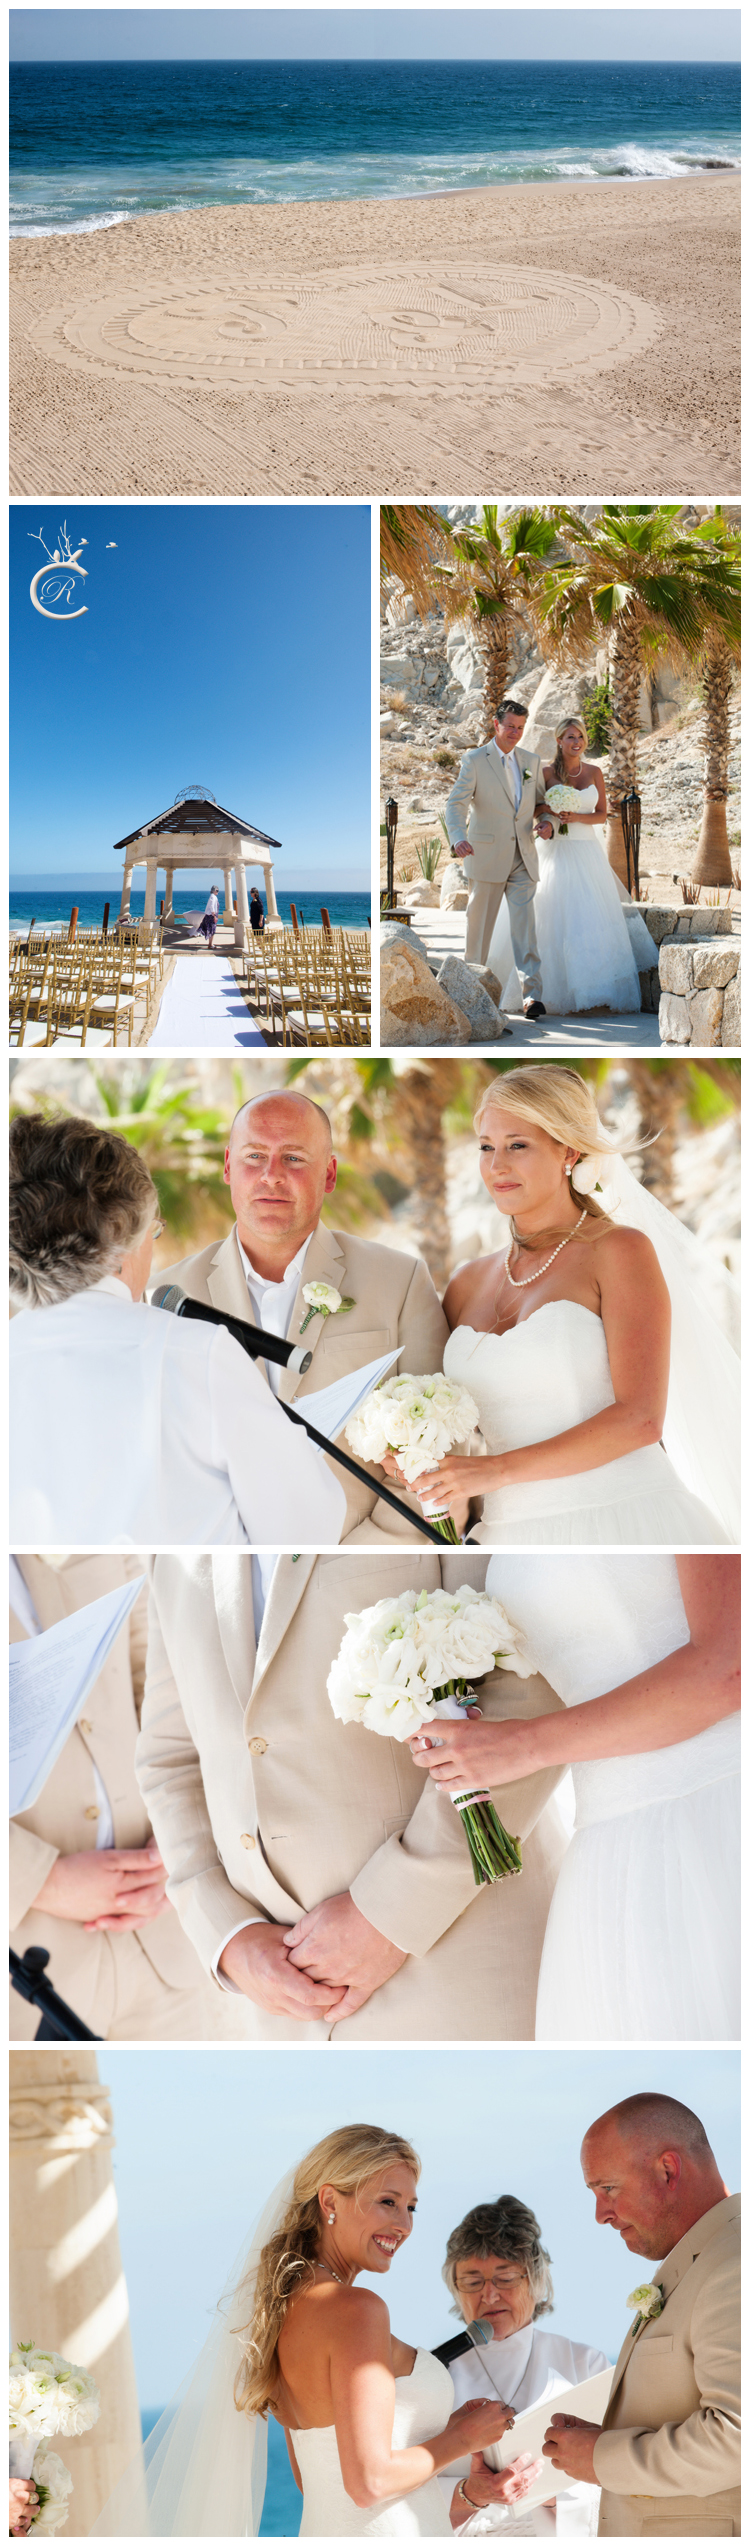 Wedding Ceremony at Grand Solmar